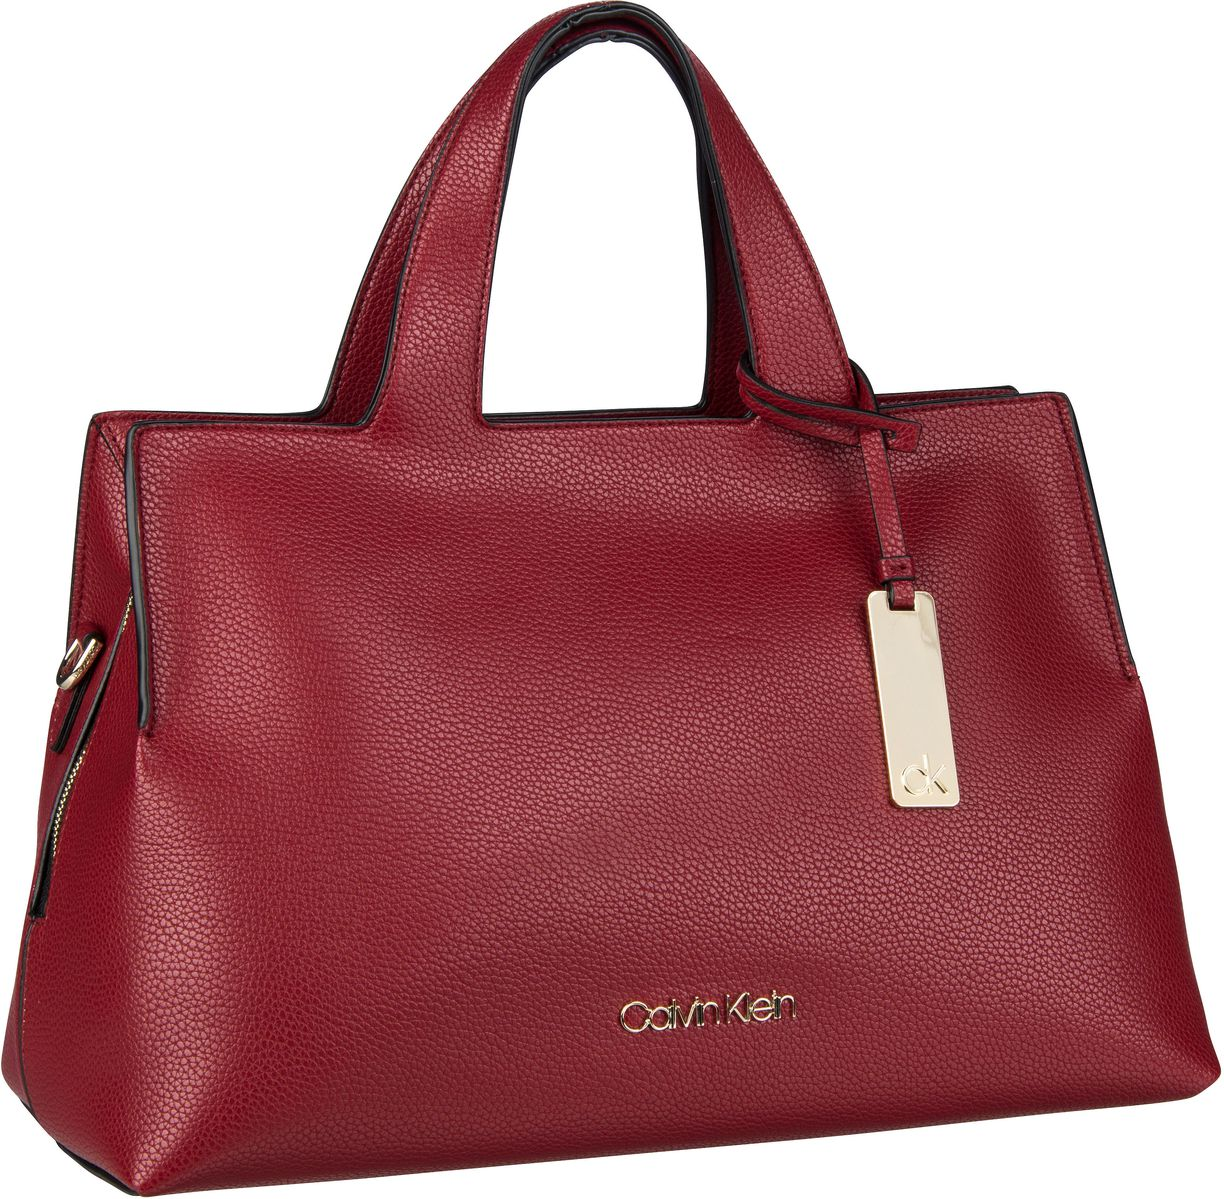 Handtasche Neat F19 Tote Barn Red